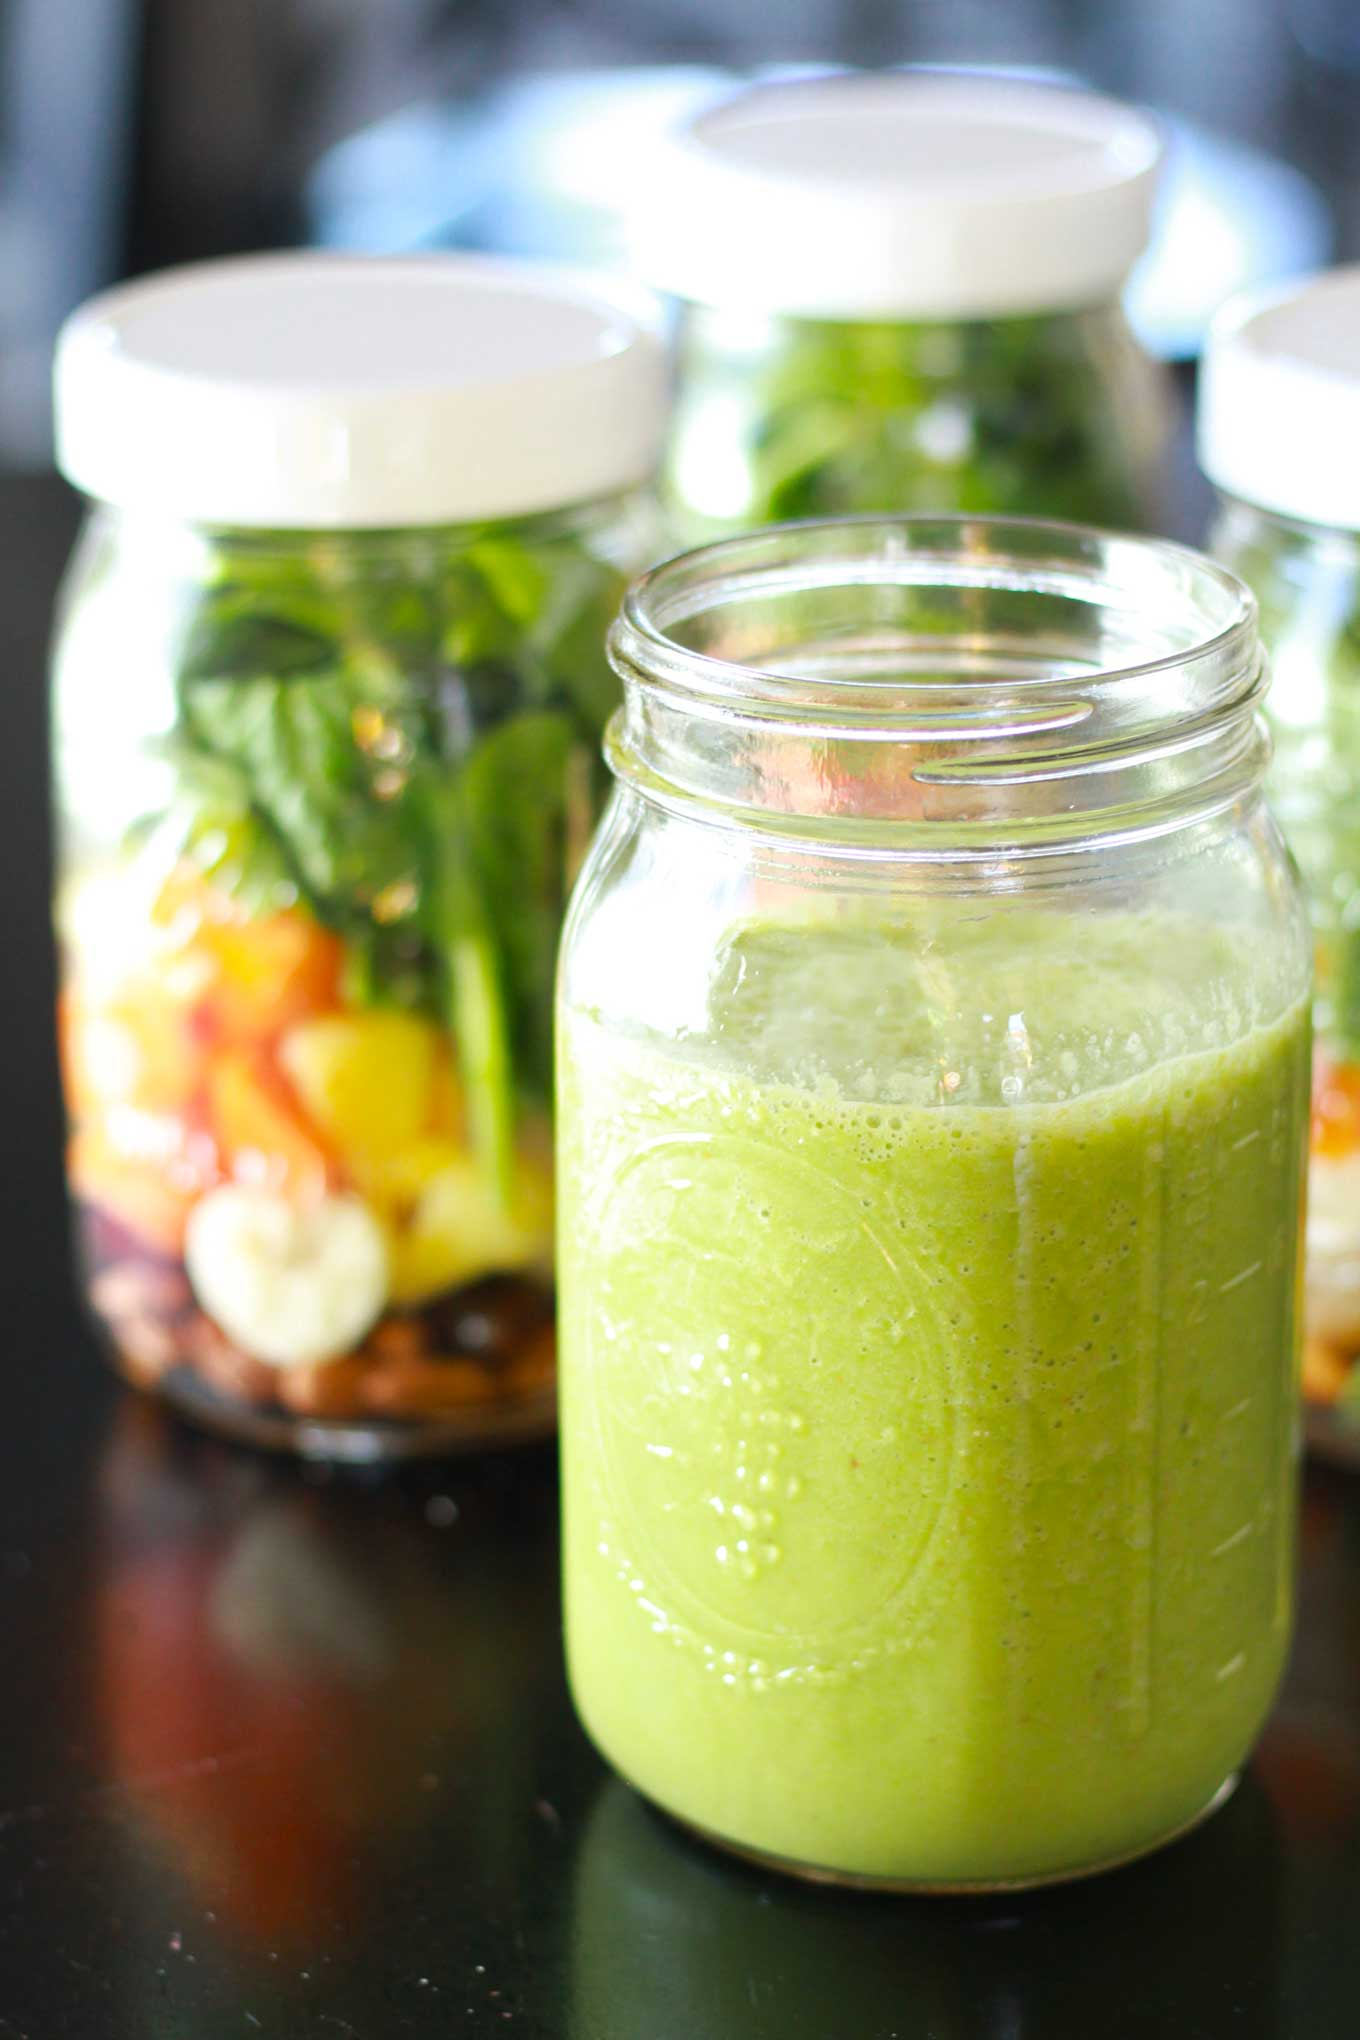 Green smoothie poured into quart size wide mouth mason jar | Vegan green smoothie recipe | https://eatwithinyourmeans.com/